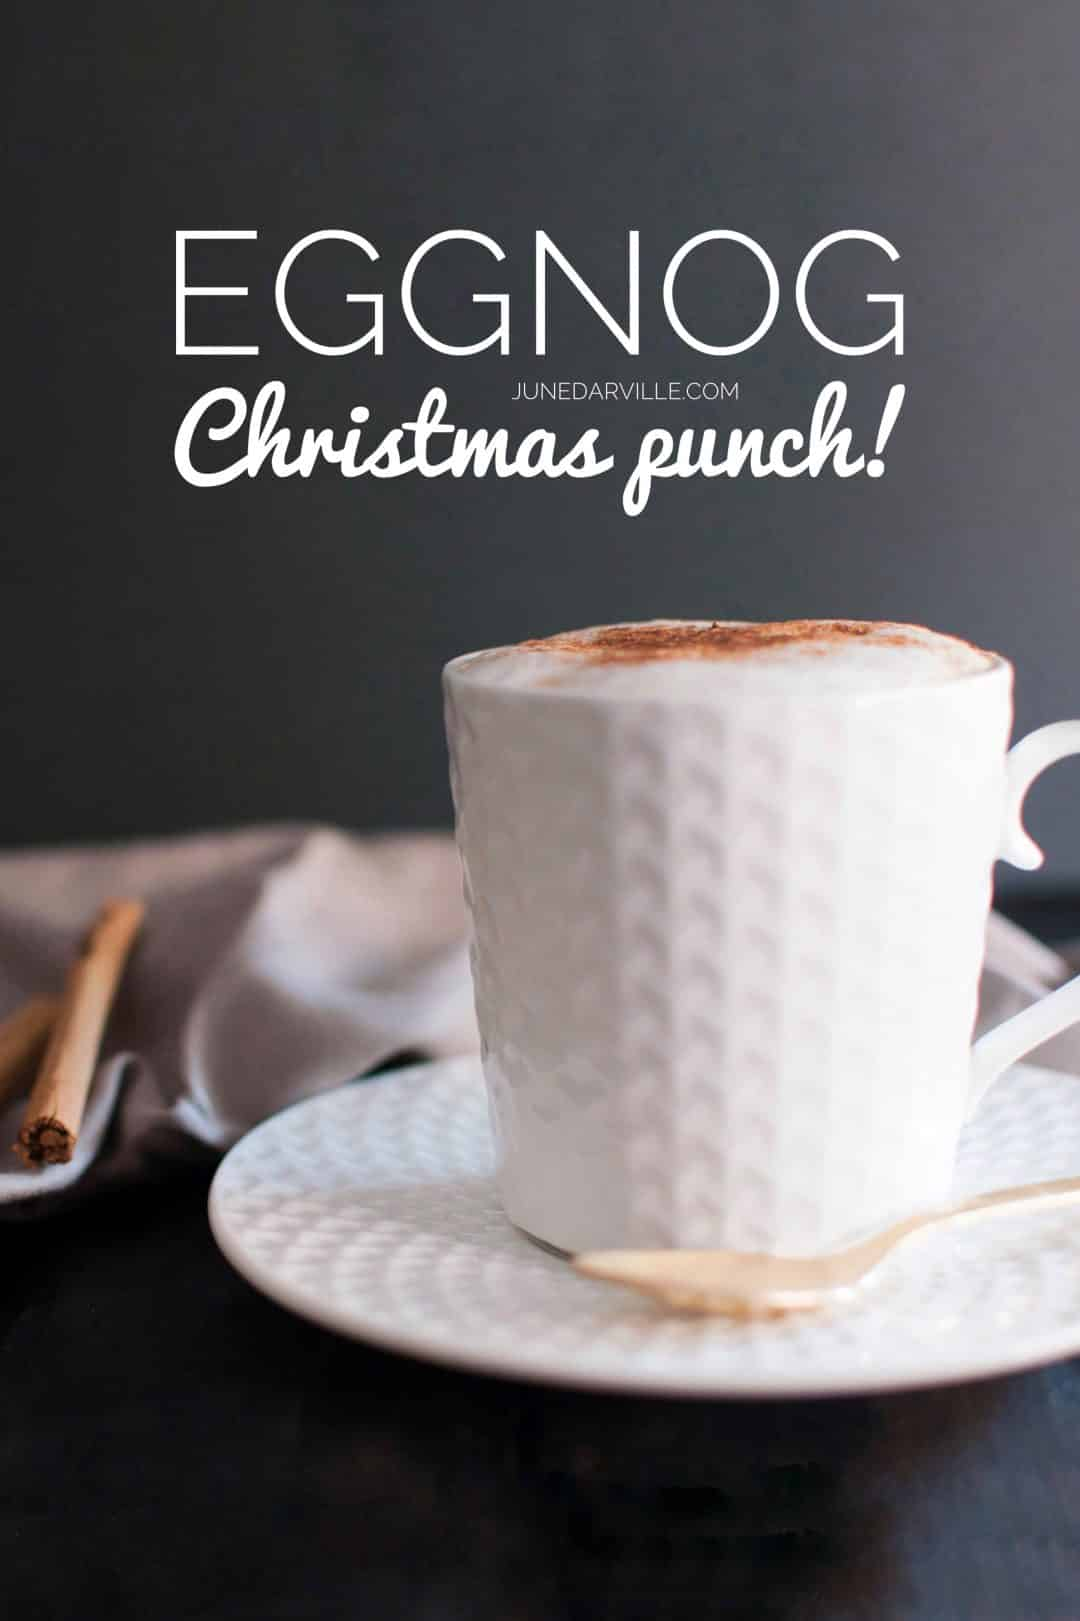 I can't believe how simple this homemade eggnog from scratch turns out to be... Definitely on my recipe list next week for Christmas!